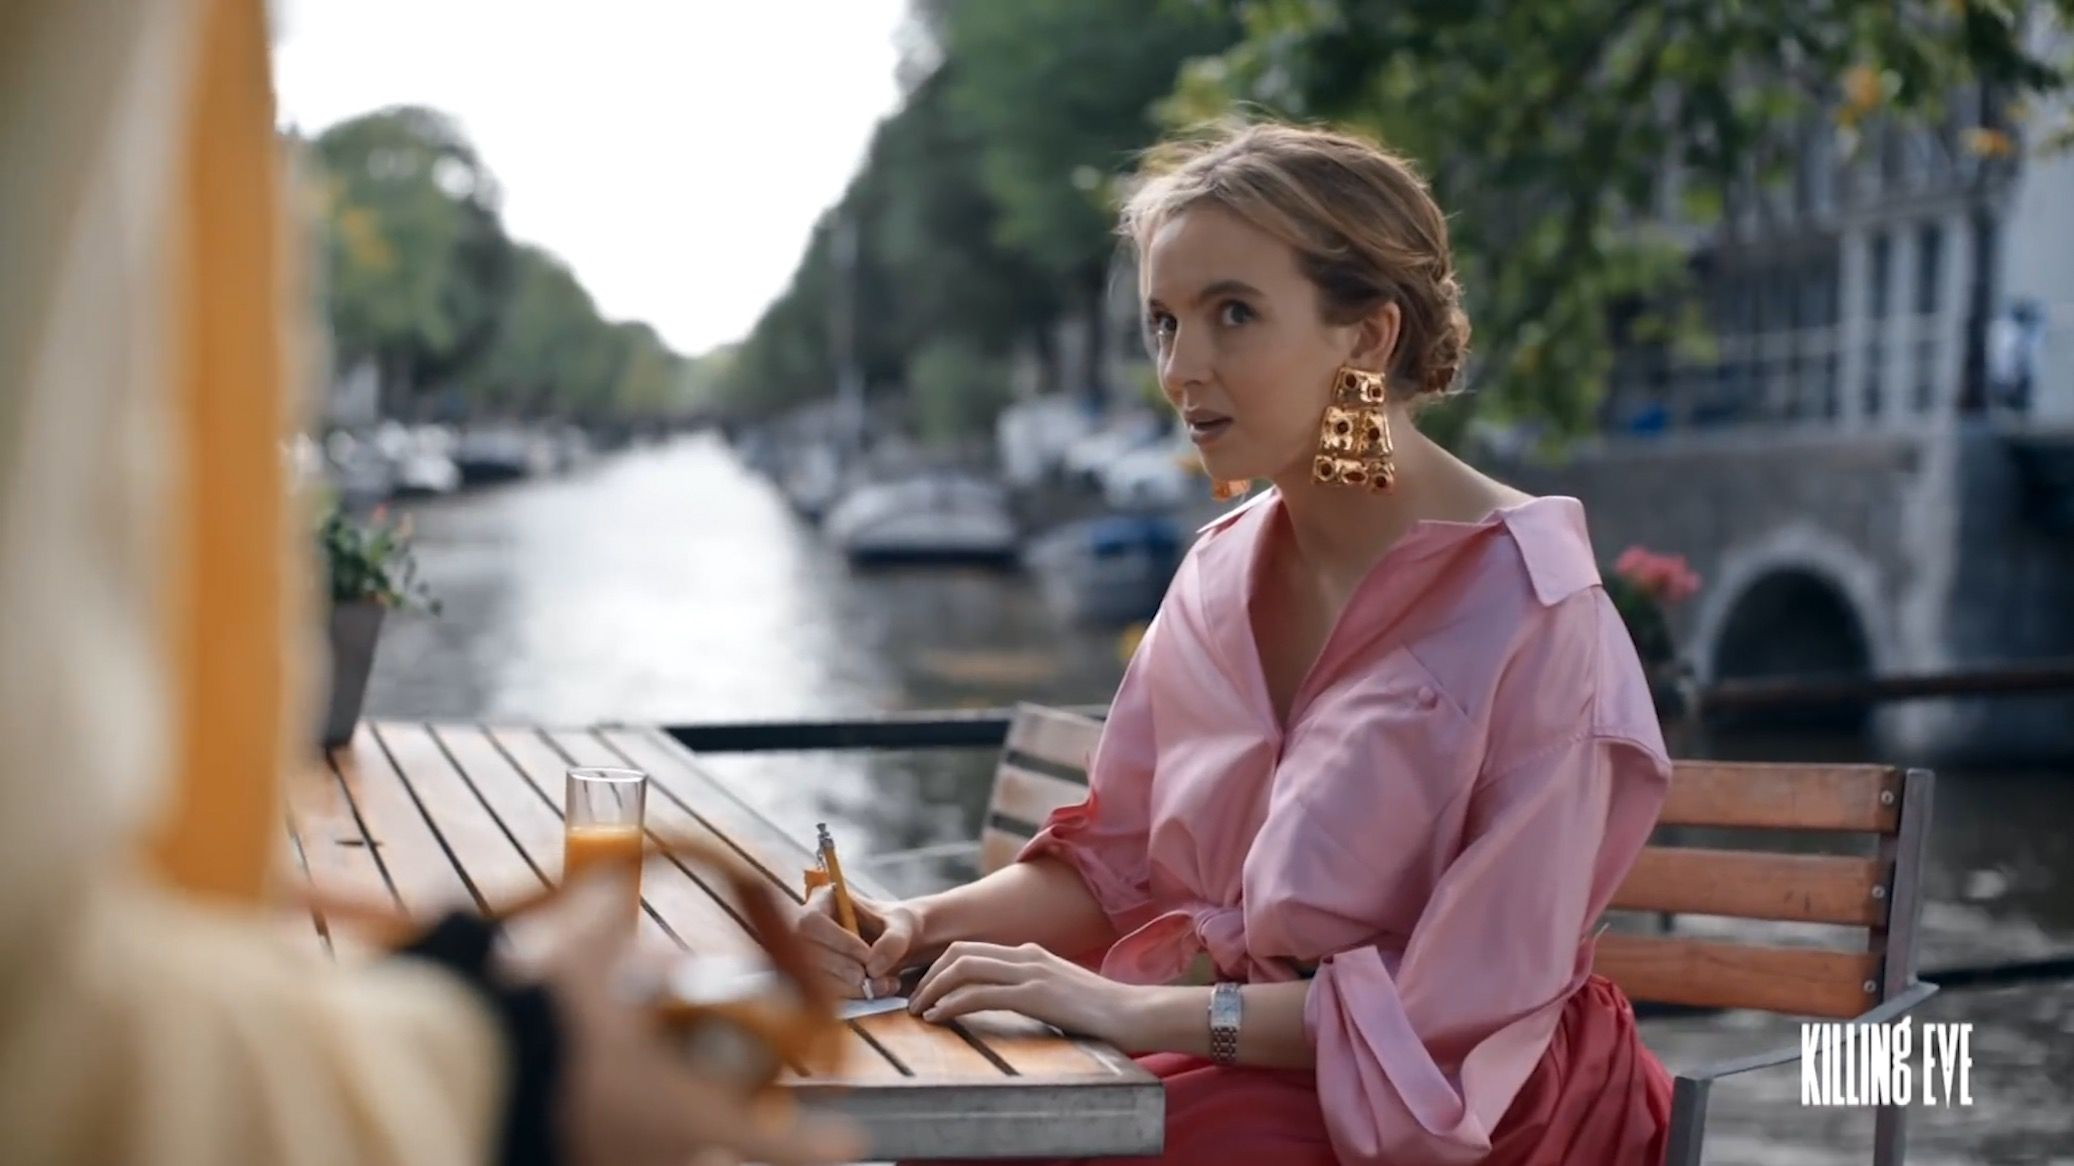 """Fans praise """"amazingly creepy"""" new character in Killing Eve"""